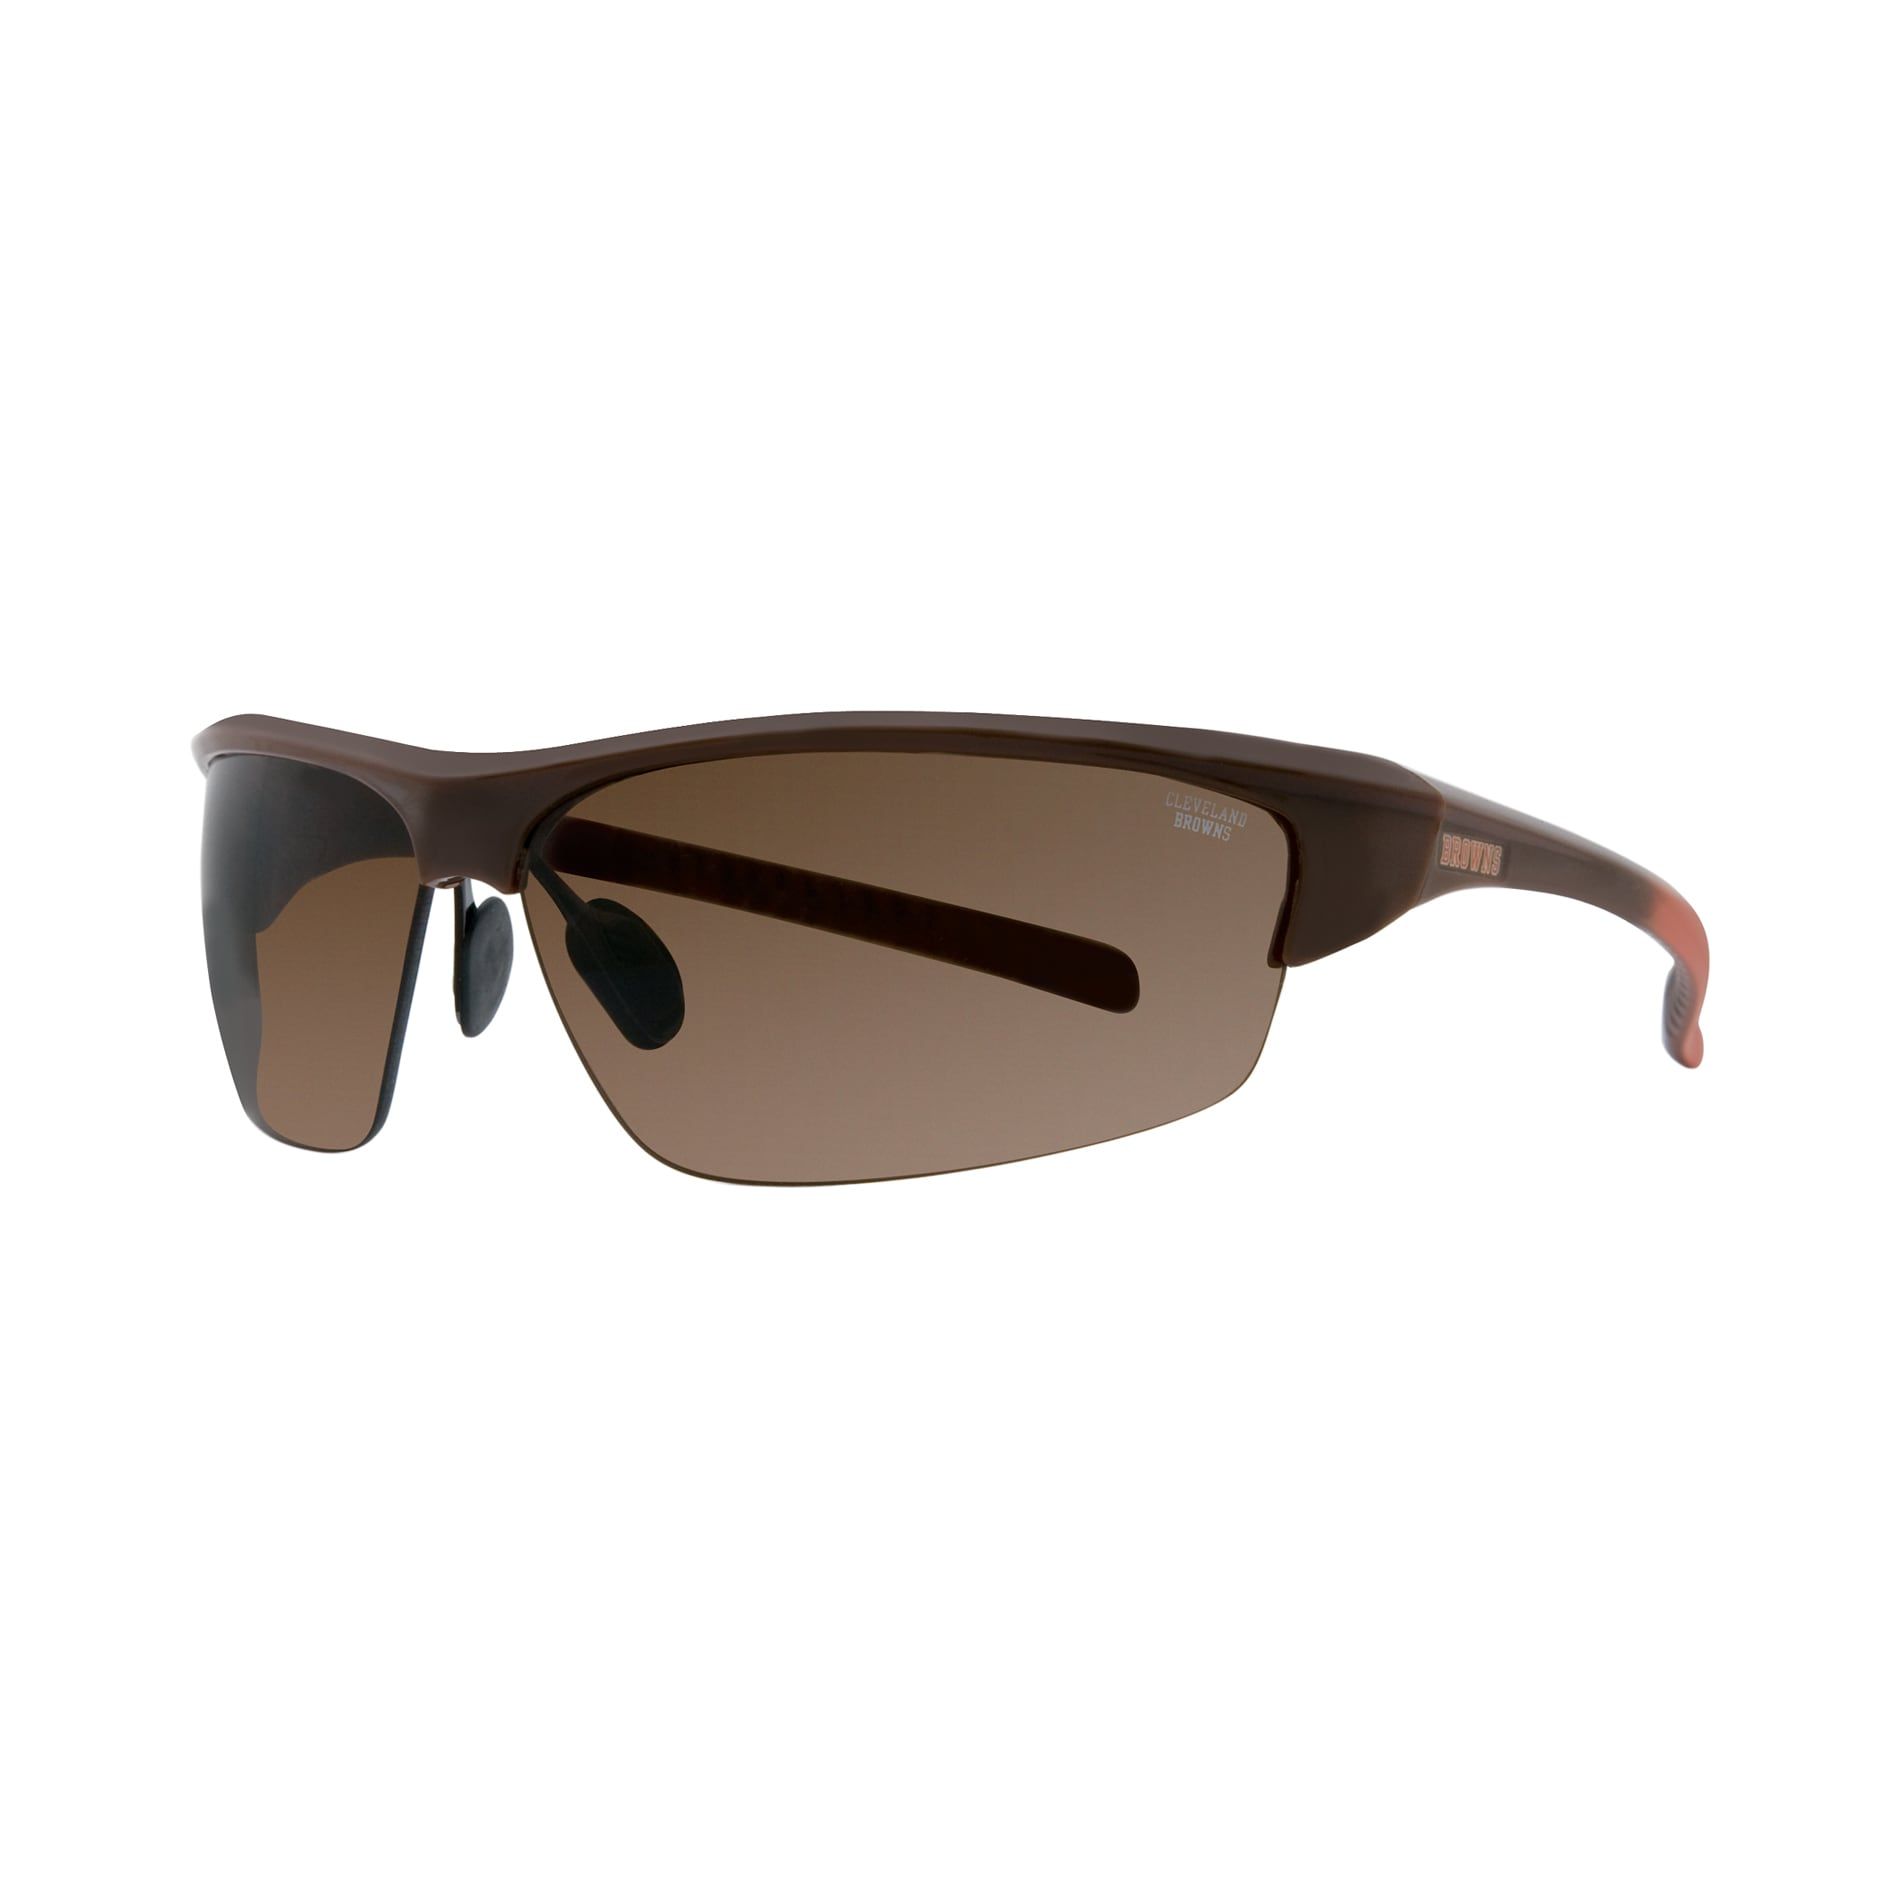 Modo Cleveland Browns Men's 'Impact' Sunglasses